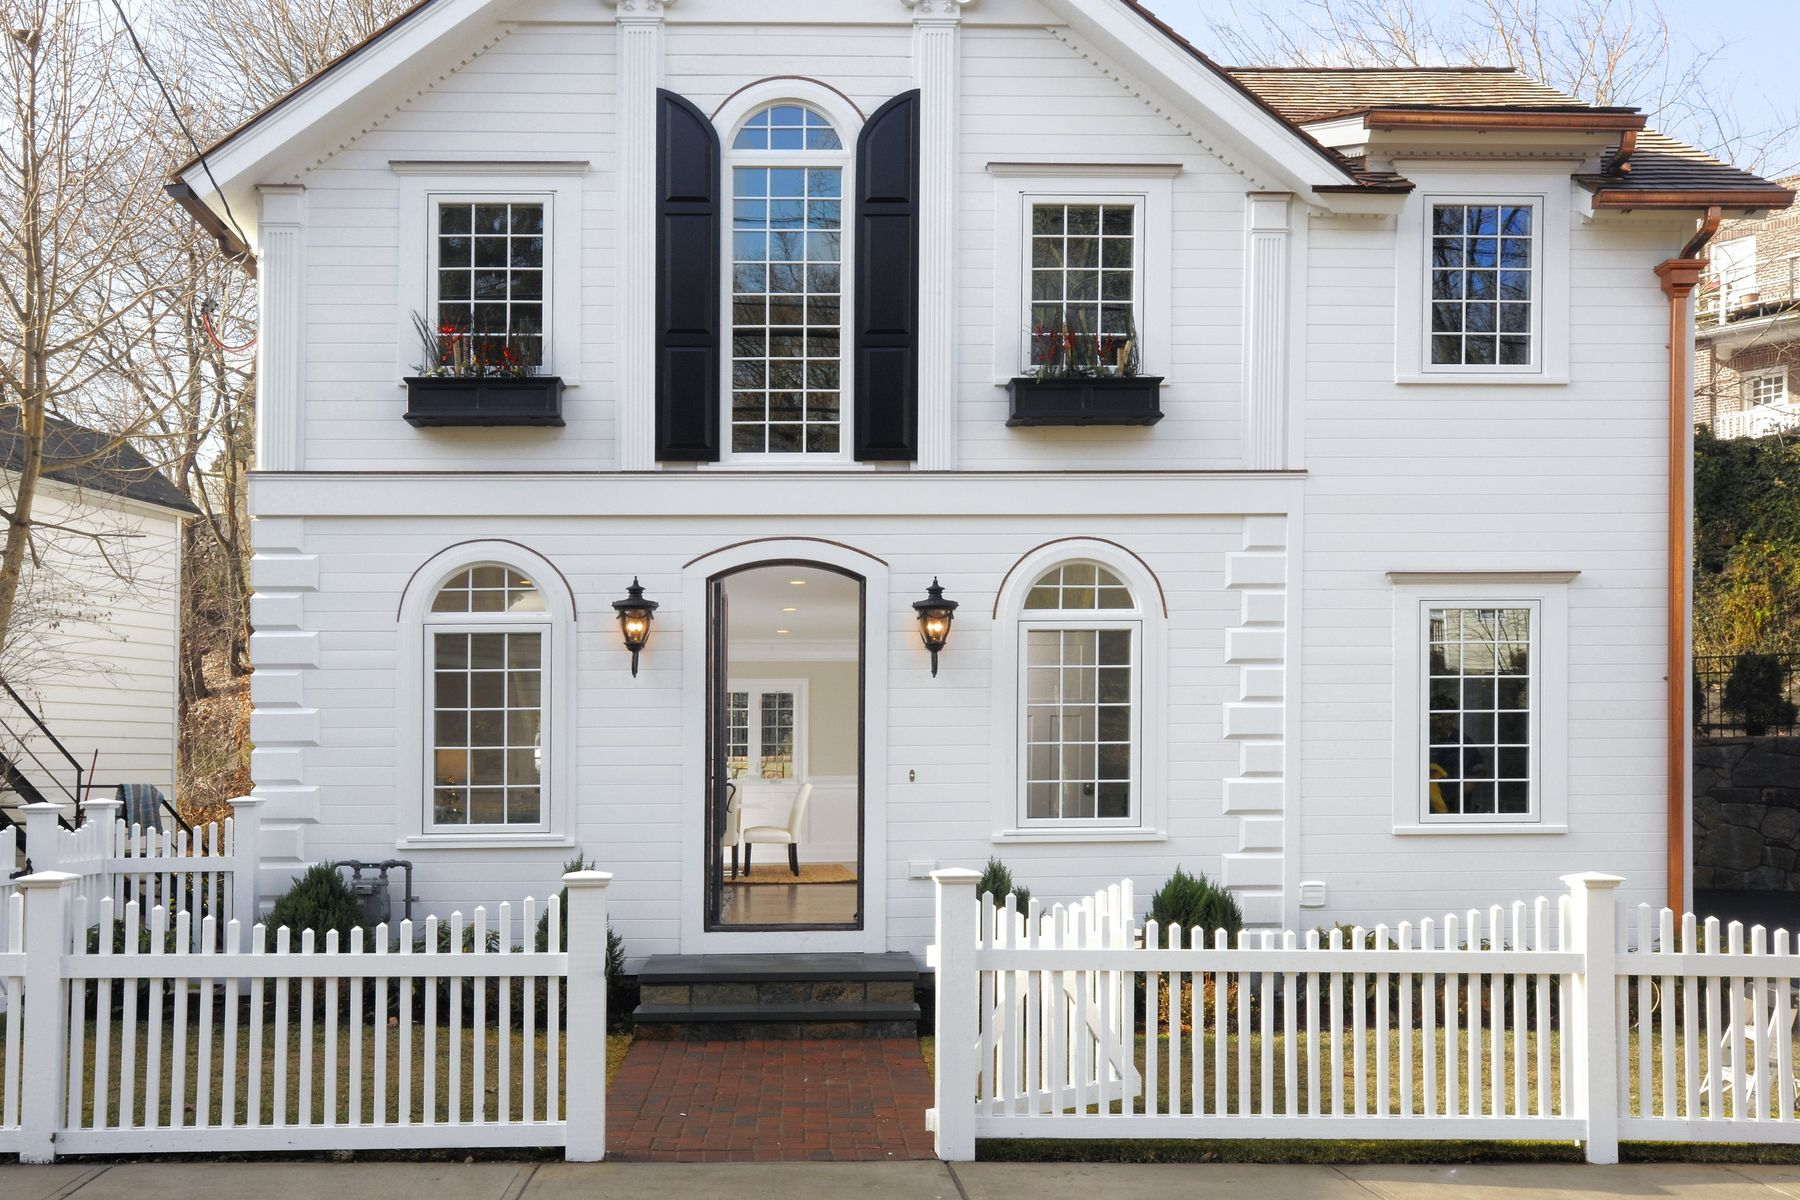 Property for Sale at In-Town Renovated Single Family 200 Davis Avenue Greenwich, Connecticut 06830 United States